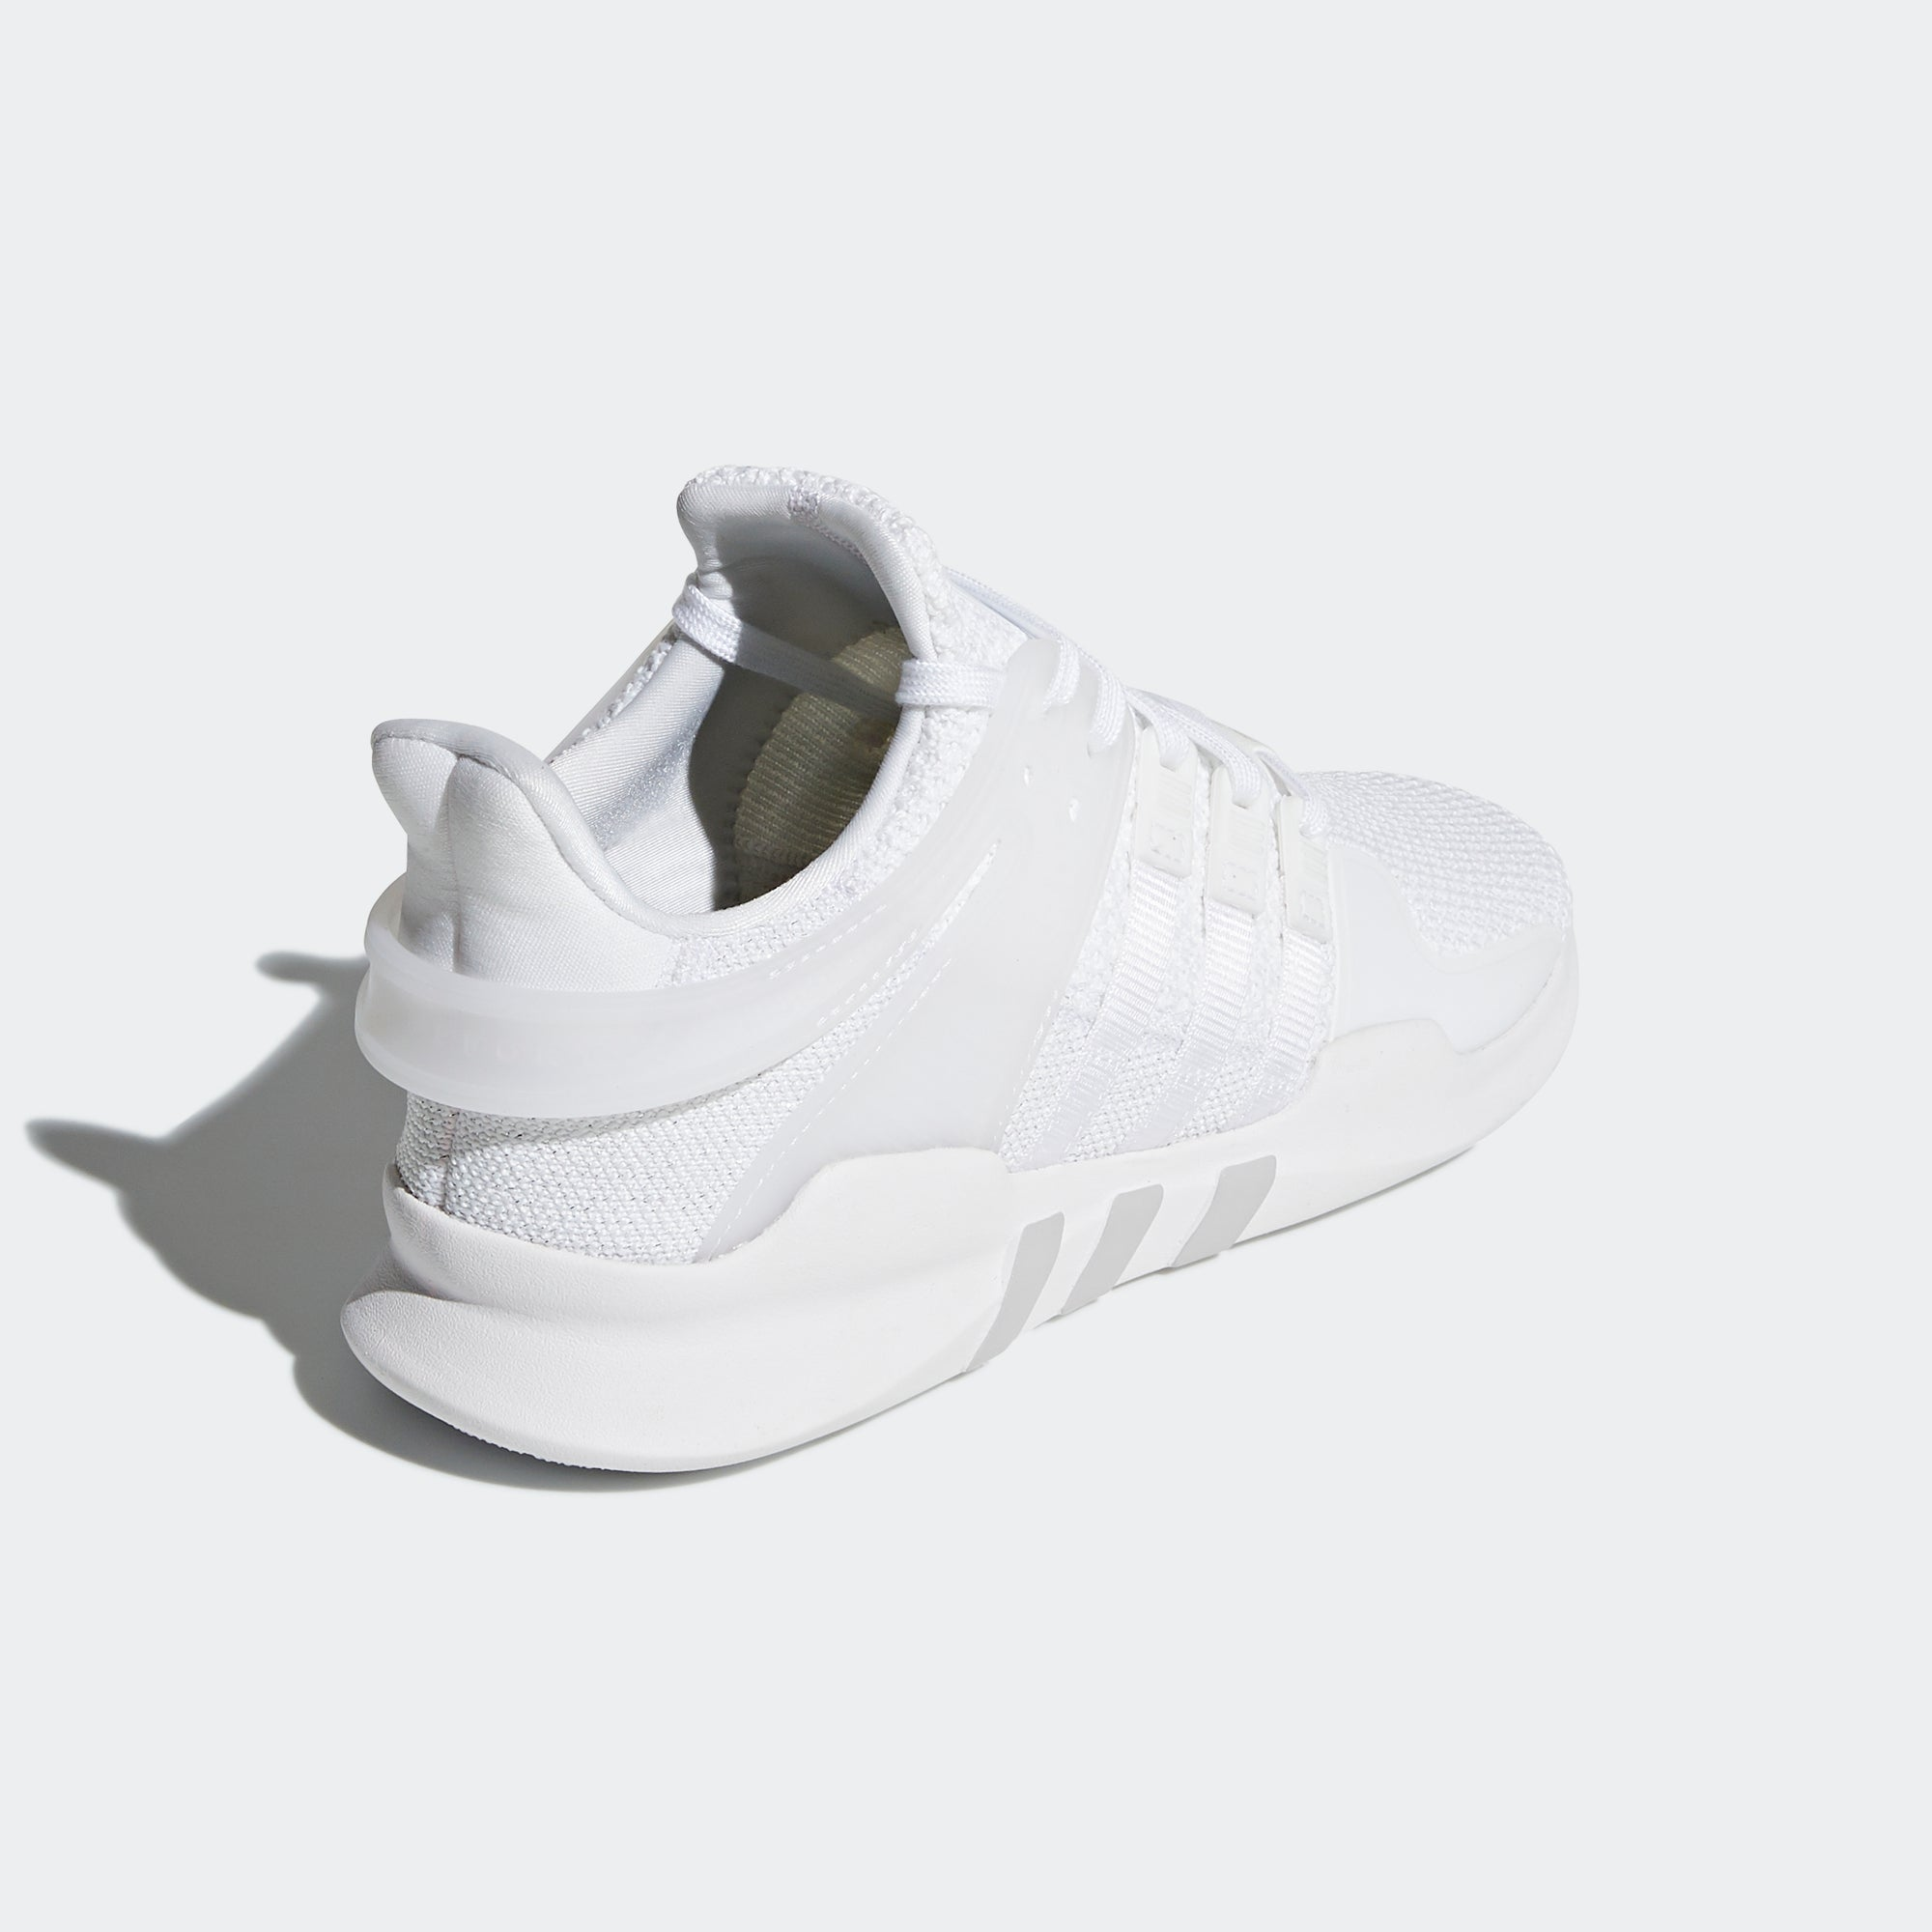 brand new 08c7d 7954b adidas EQT Support ADV Shoes Cloud White/ Grey AQ0916 ...